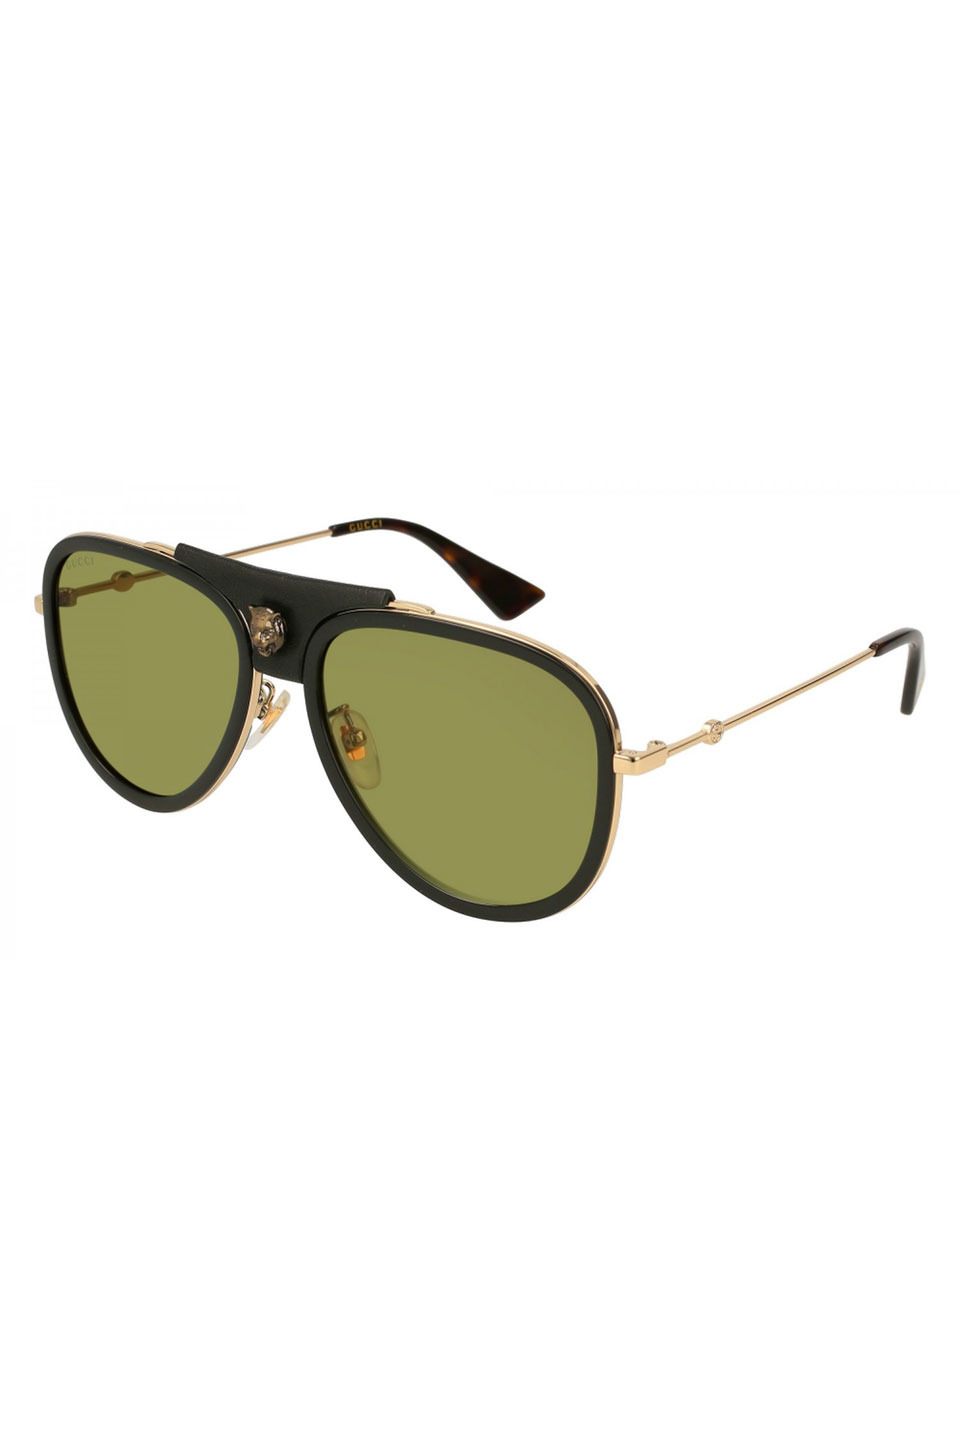 b3462a98e2 Gucci Sunglasses Gg 0062 S- 014 Gold Green